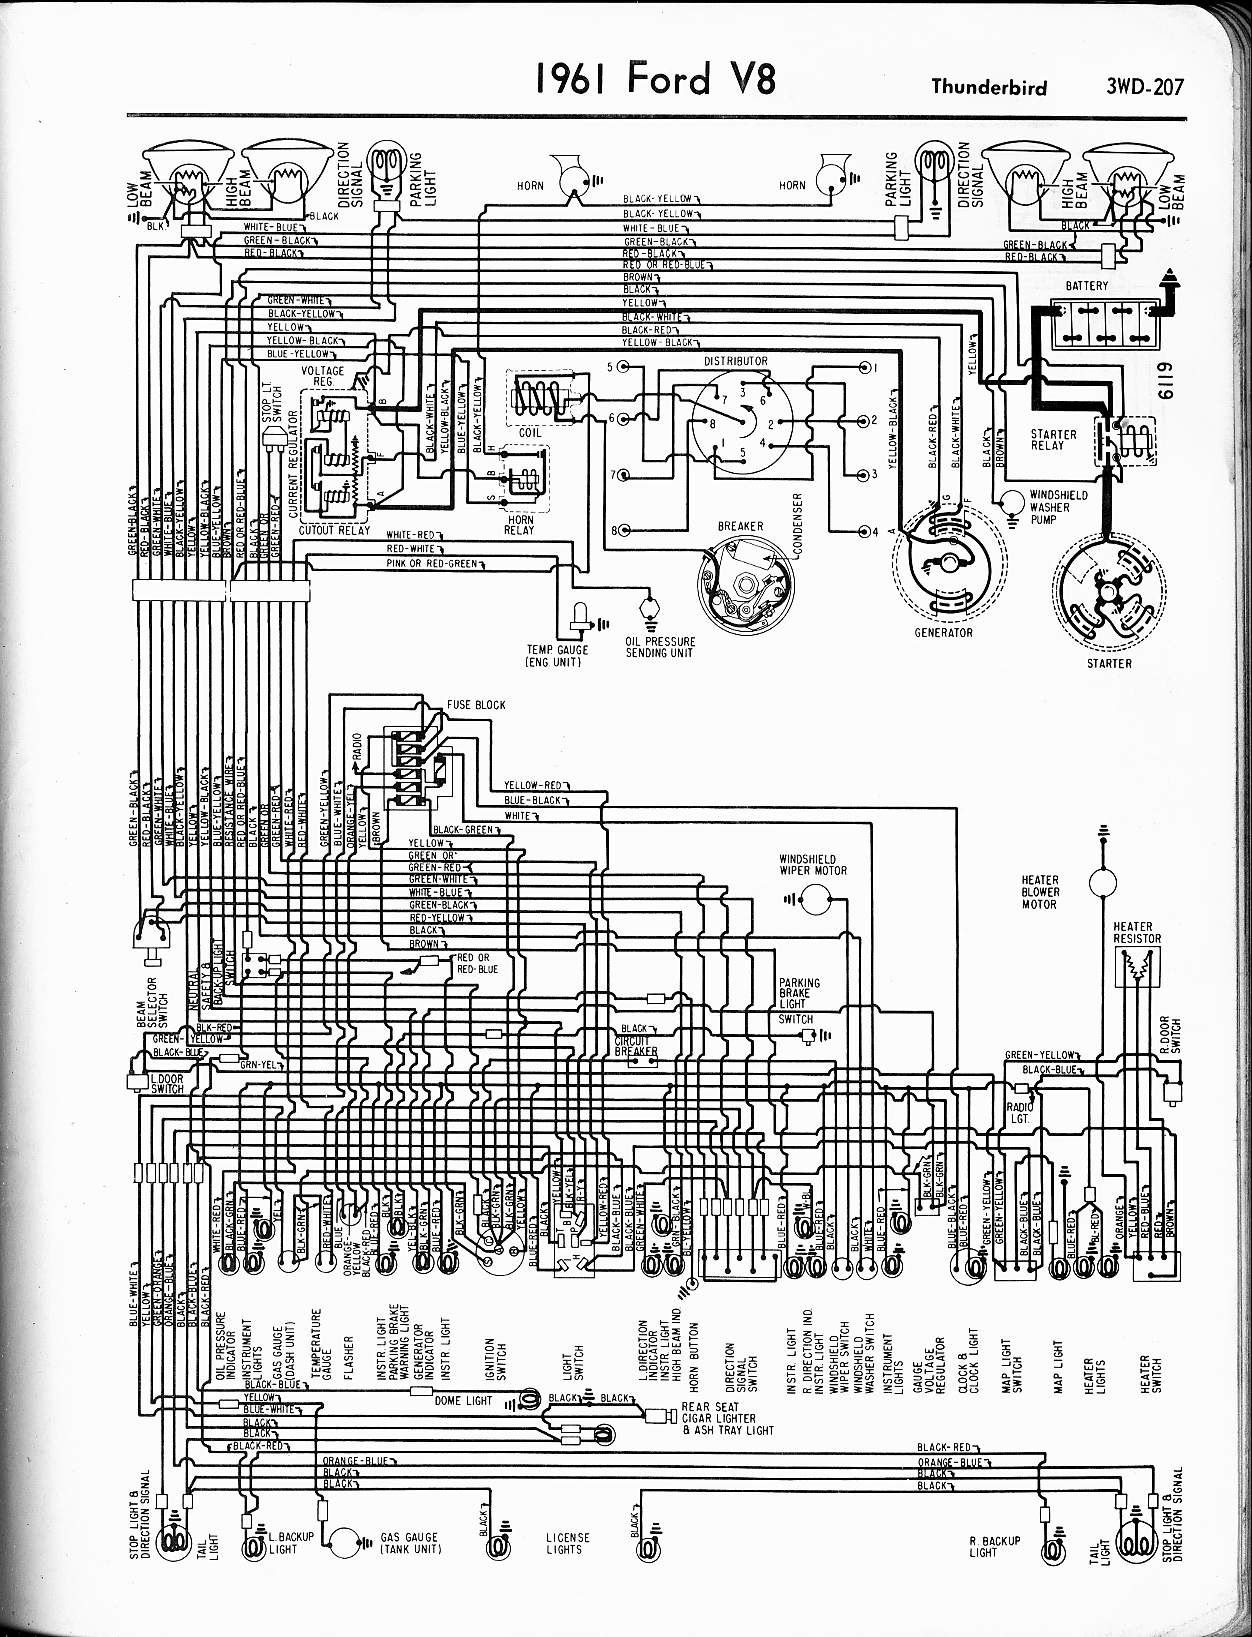 1961 thunderbird wiring diagram wiring diagram u2022 rh tinyforge co 1960 Thunderbird 1961 ford thunderbird wiring diagram